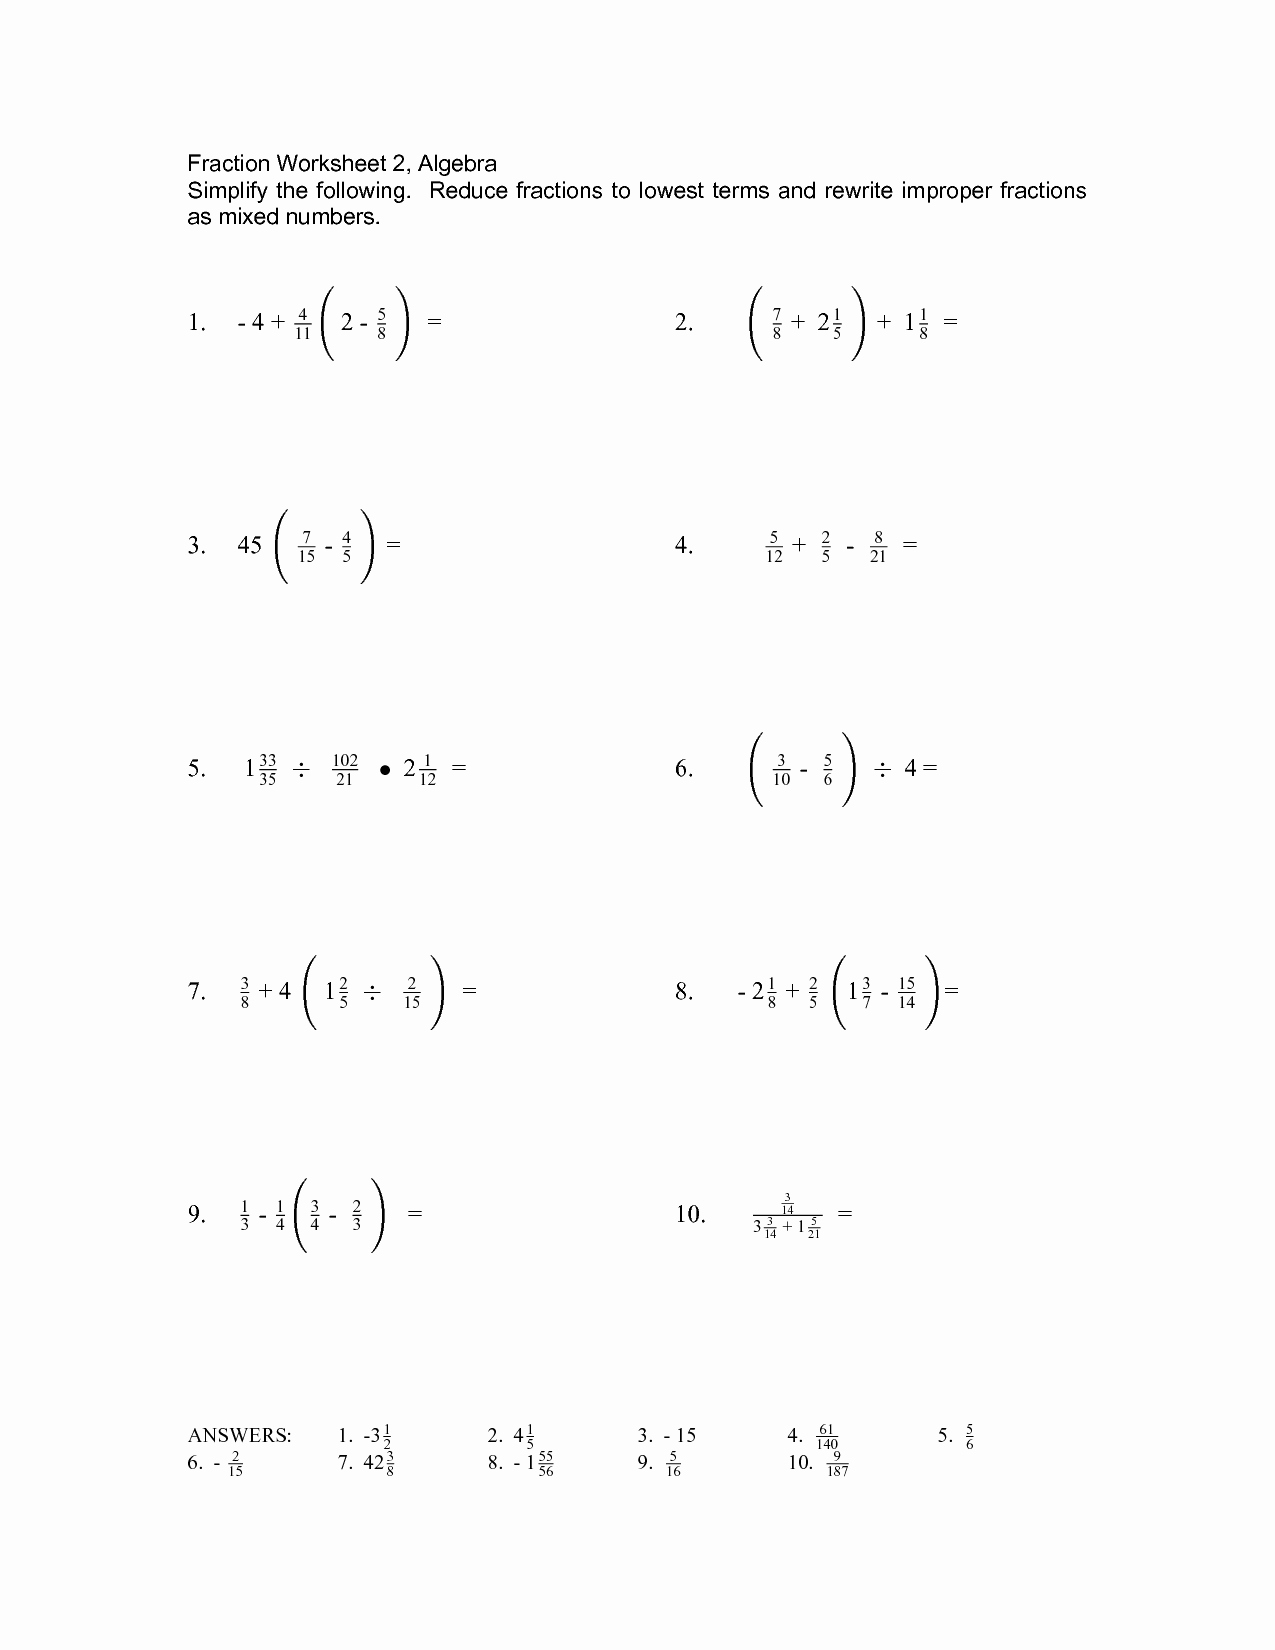 Simplifying Algebraic Expressions Worksheet Answers Best Of 17 Best Of Simplifying Algebra Worksheets